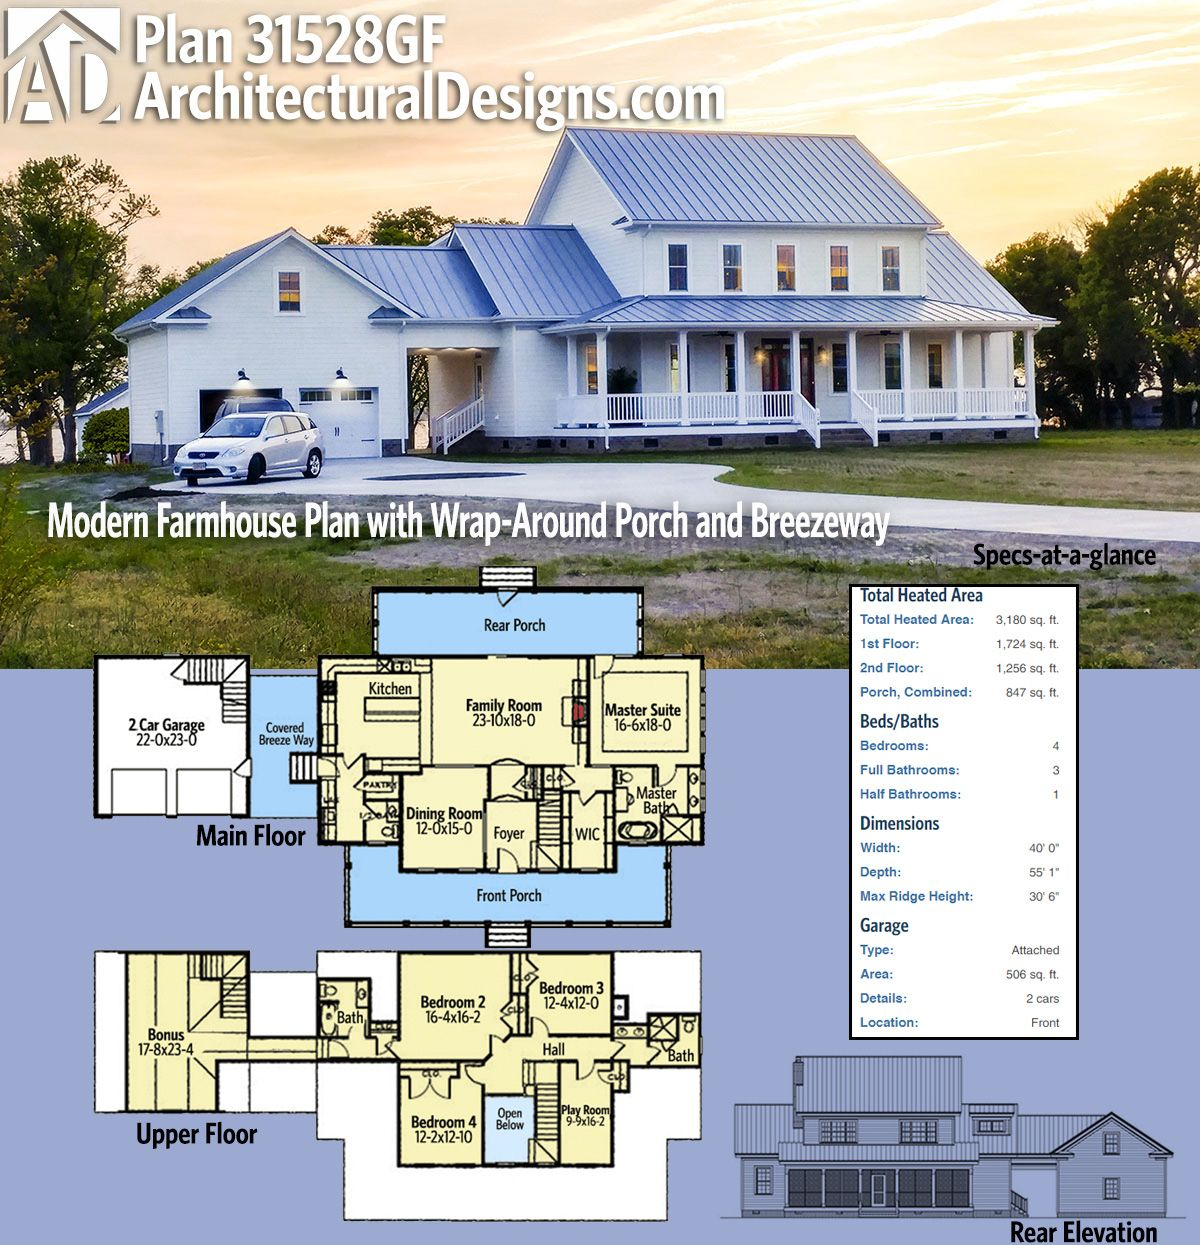 Plan 31528gf Modern Farmhouse Plan With Wrap Around Porch And Breezeway Modern Farmhouse Plans Farmhouse Plans Farmhouse Floor Plans